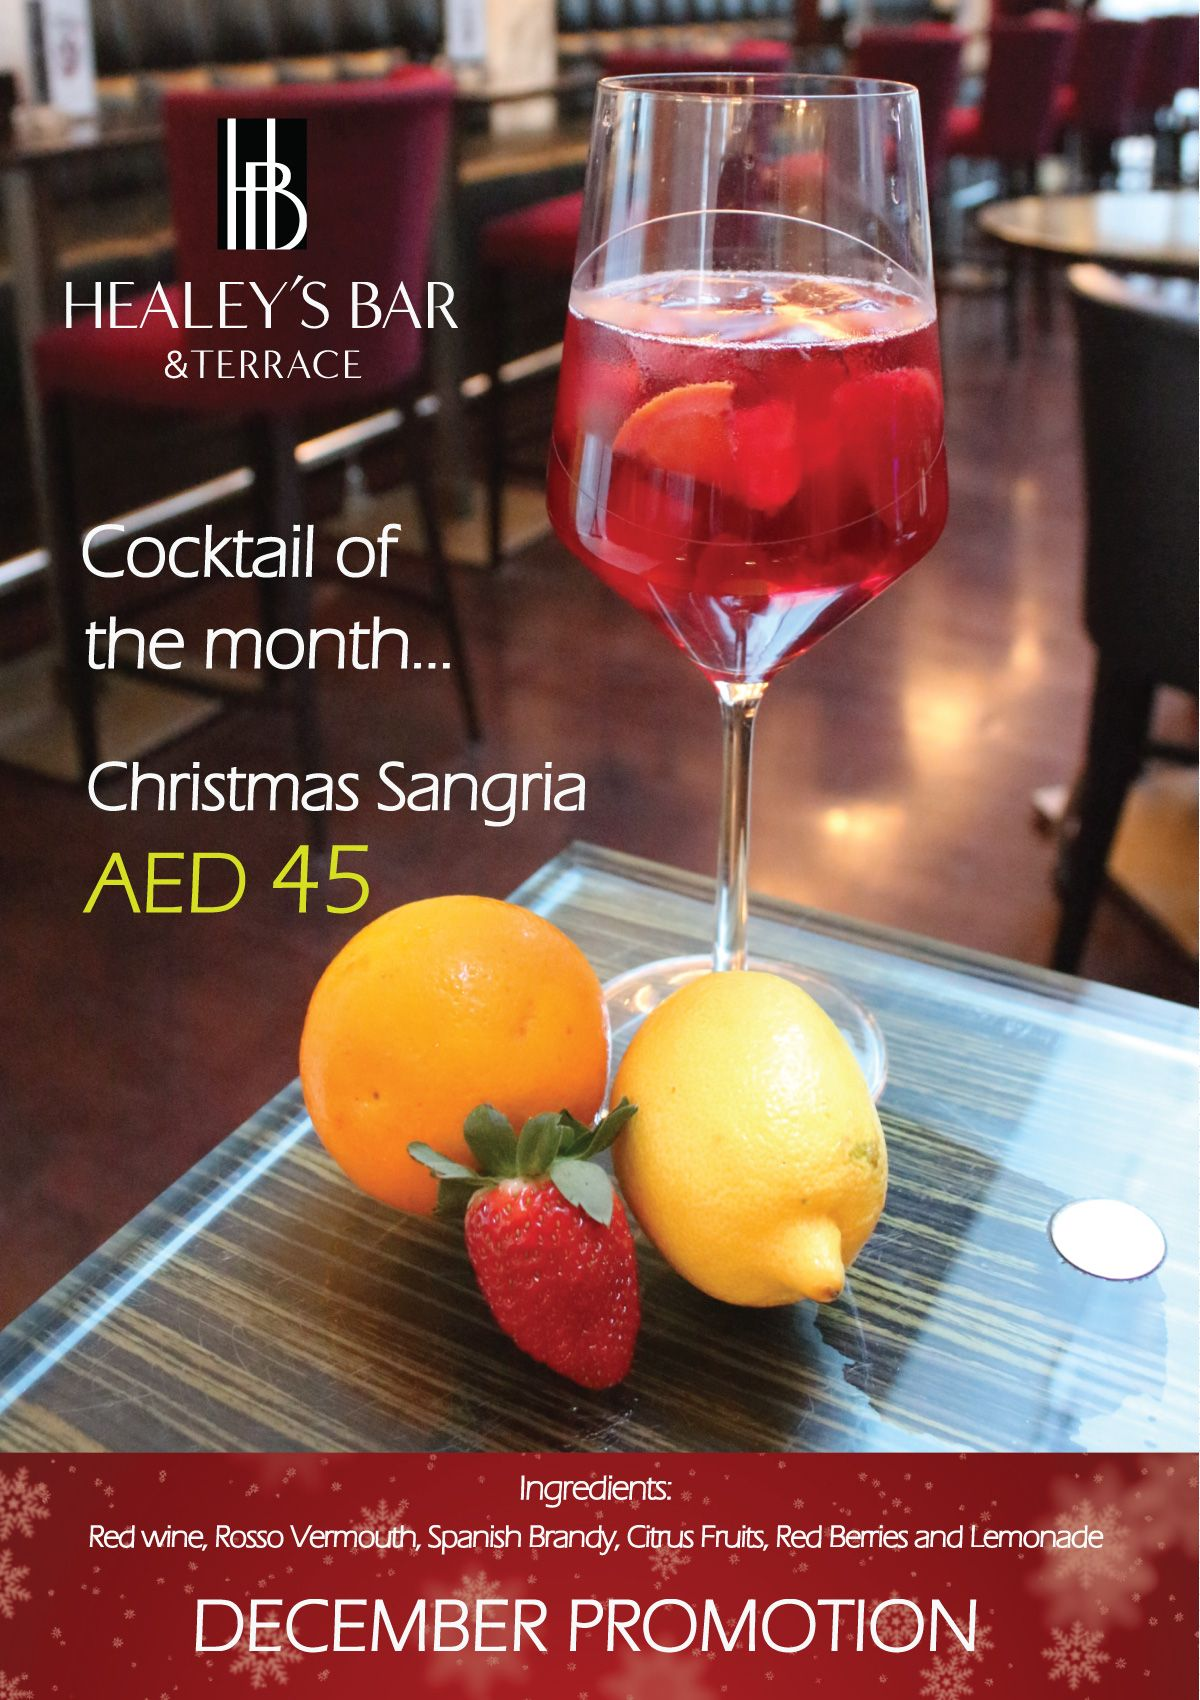 Celebrate This Christmas At Healey S Bar With This Special Christmas Sangria Christmas Sangria Sangria Citrus Fruit